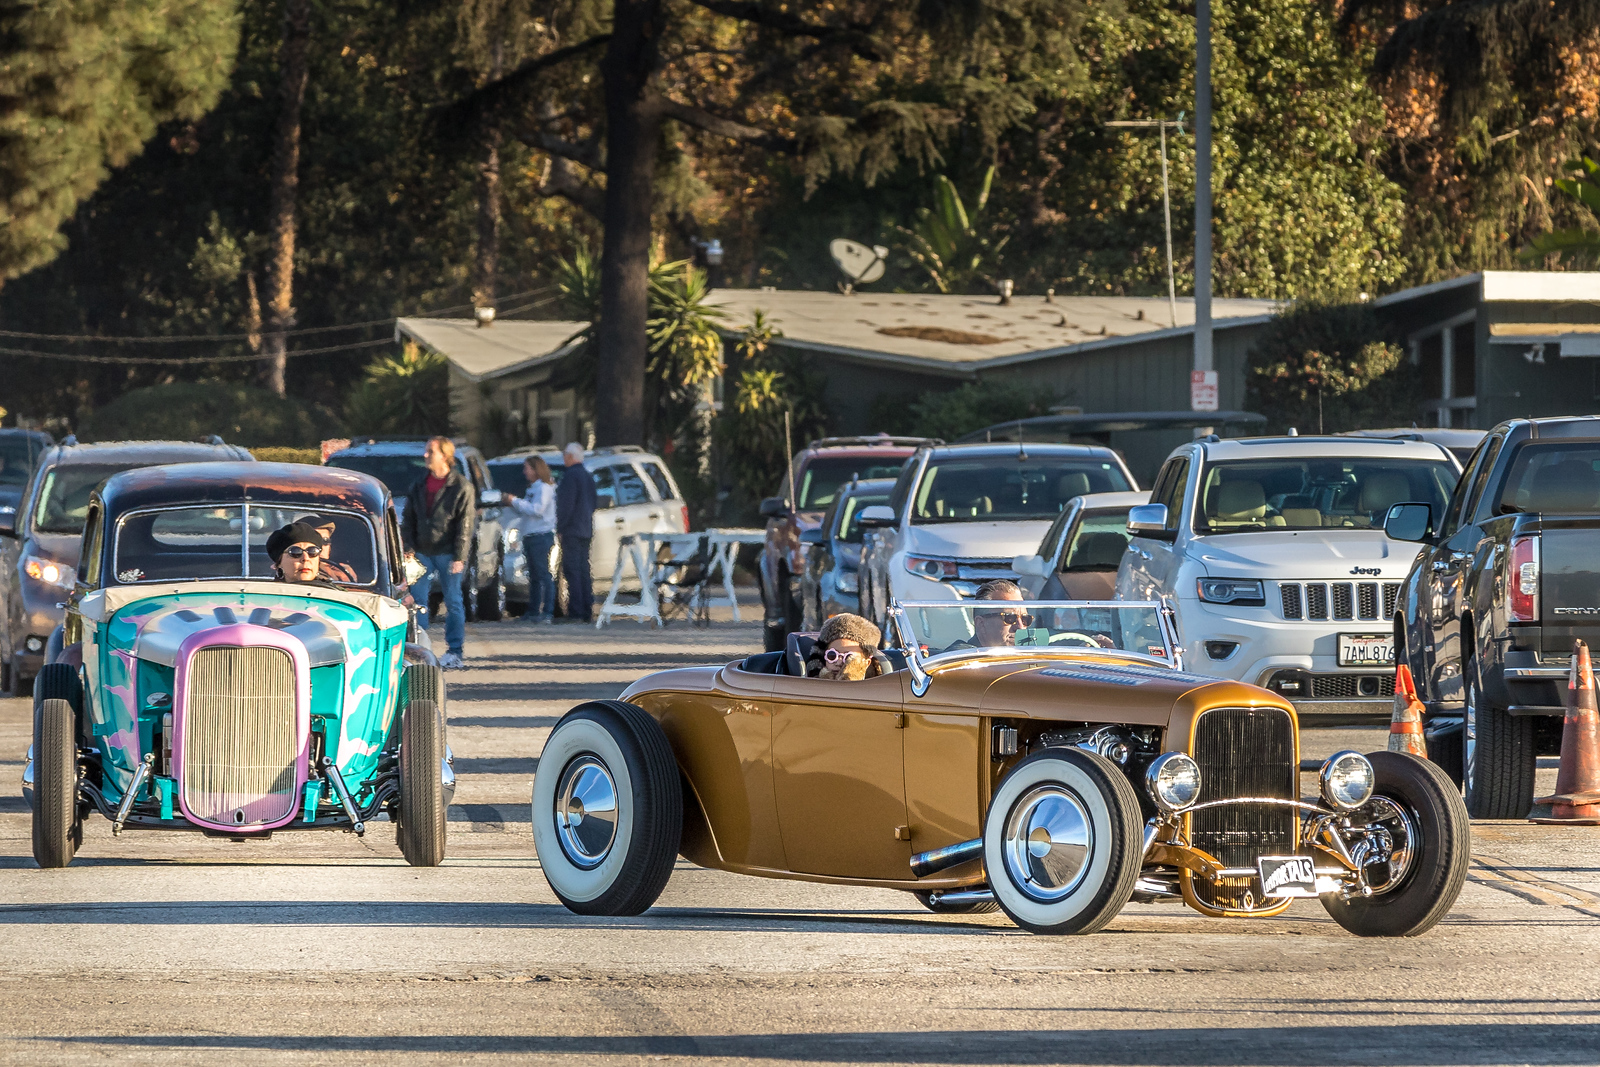 A gathering of antique and classic cars and motorcycles